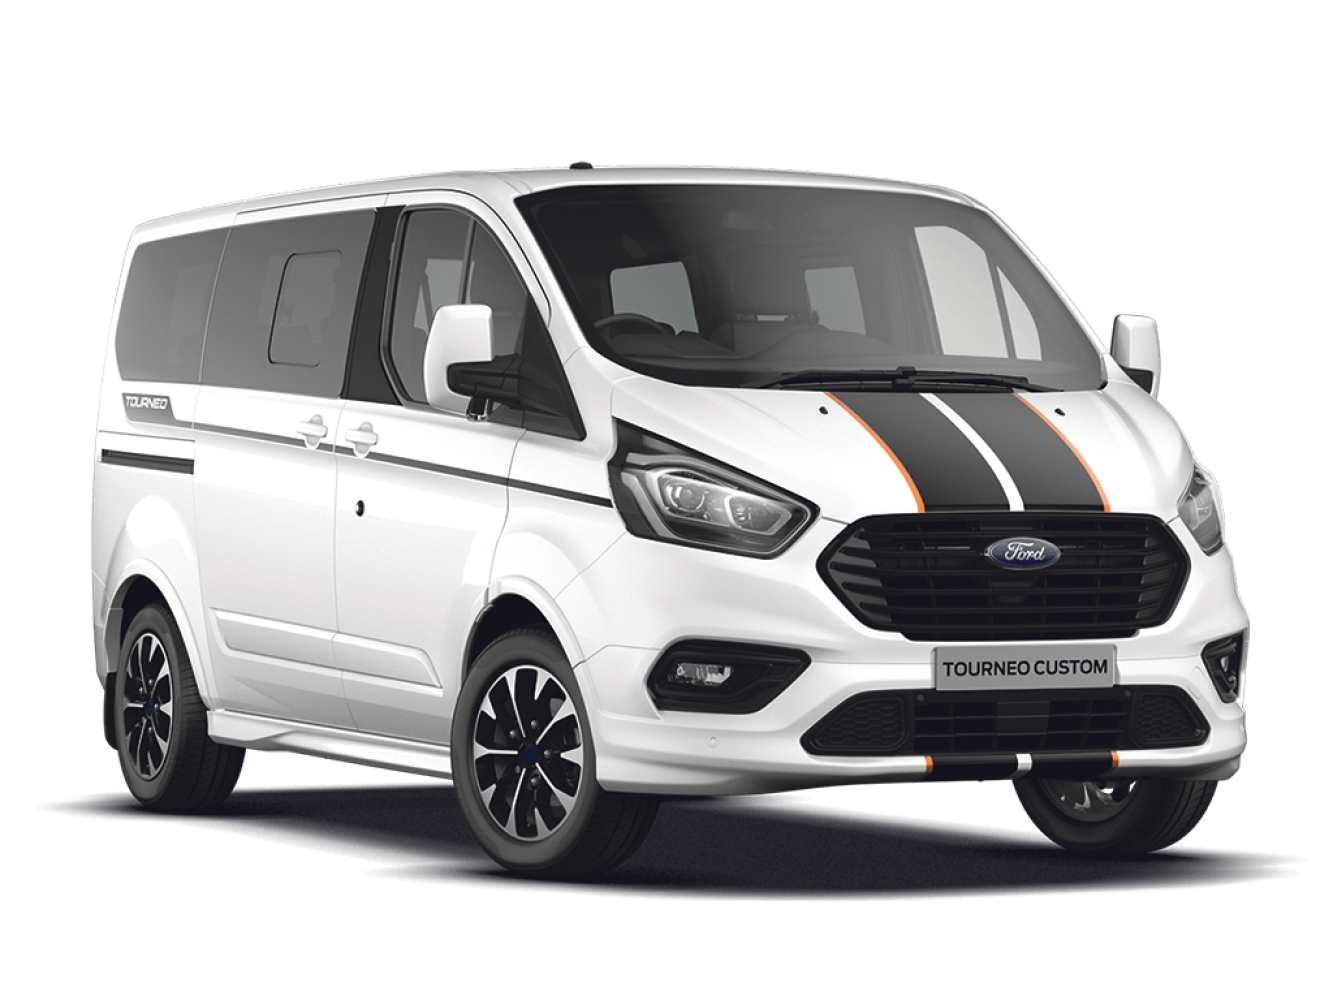 new ford transit custom tourneo l1 diesel fwd 2 0 tdci ecoblue 170ps l r 8 seater sport auto for. Black Bedroom Furniture Sets. Home Design Ideas